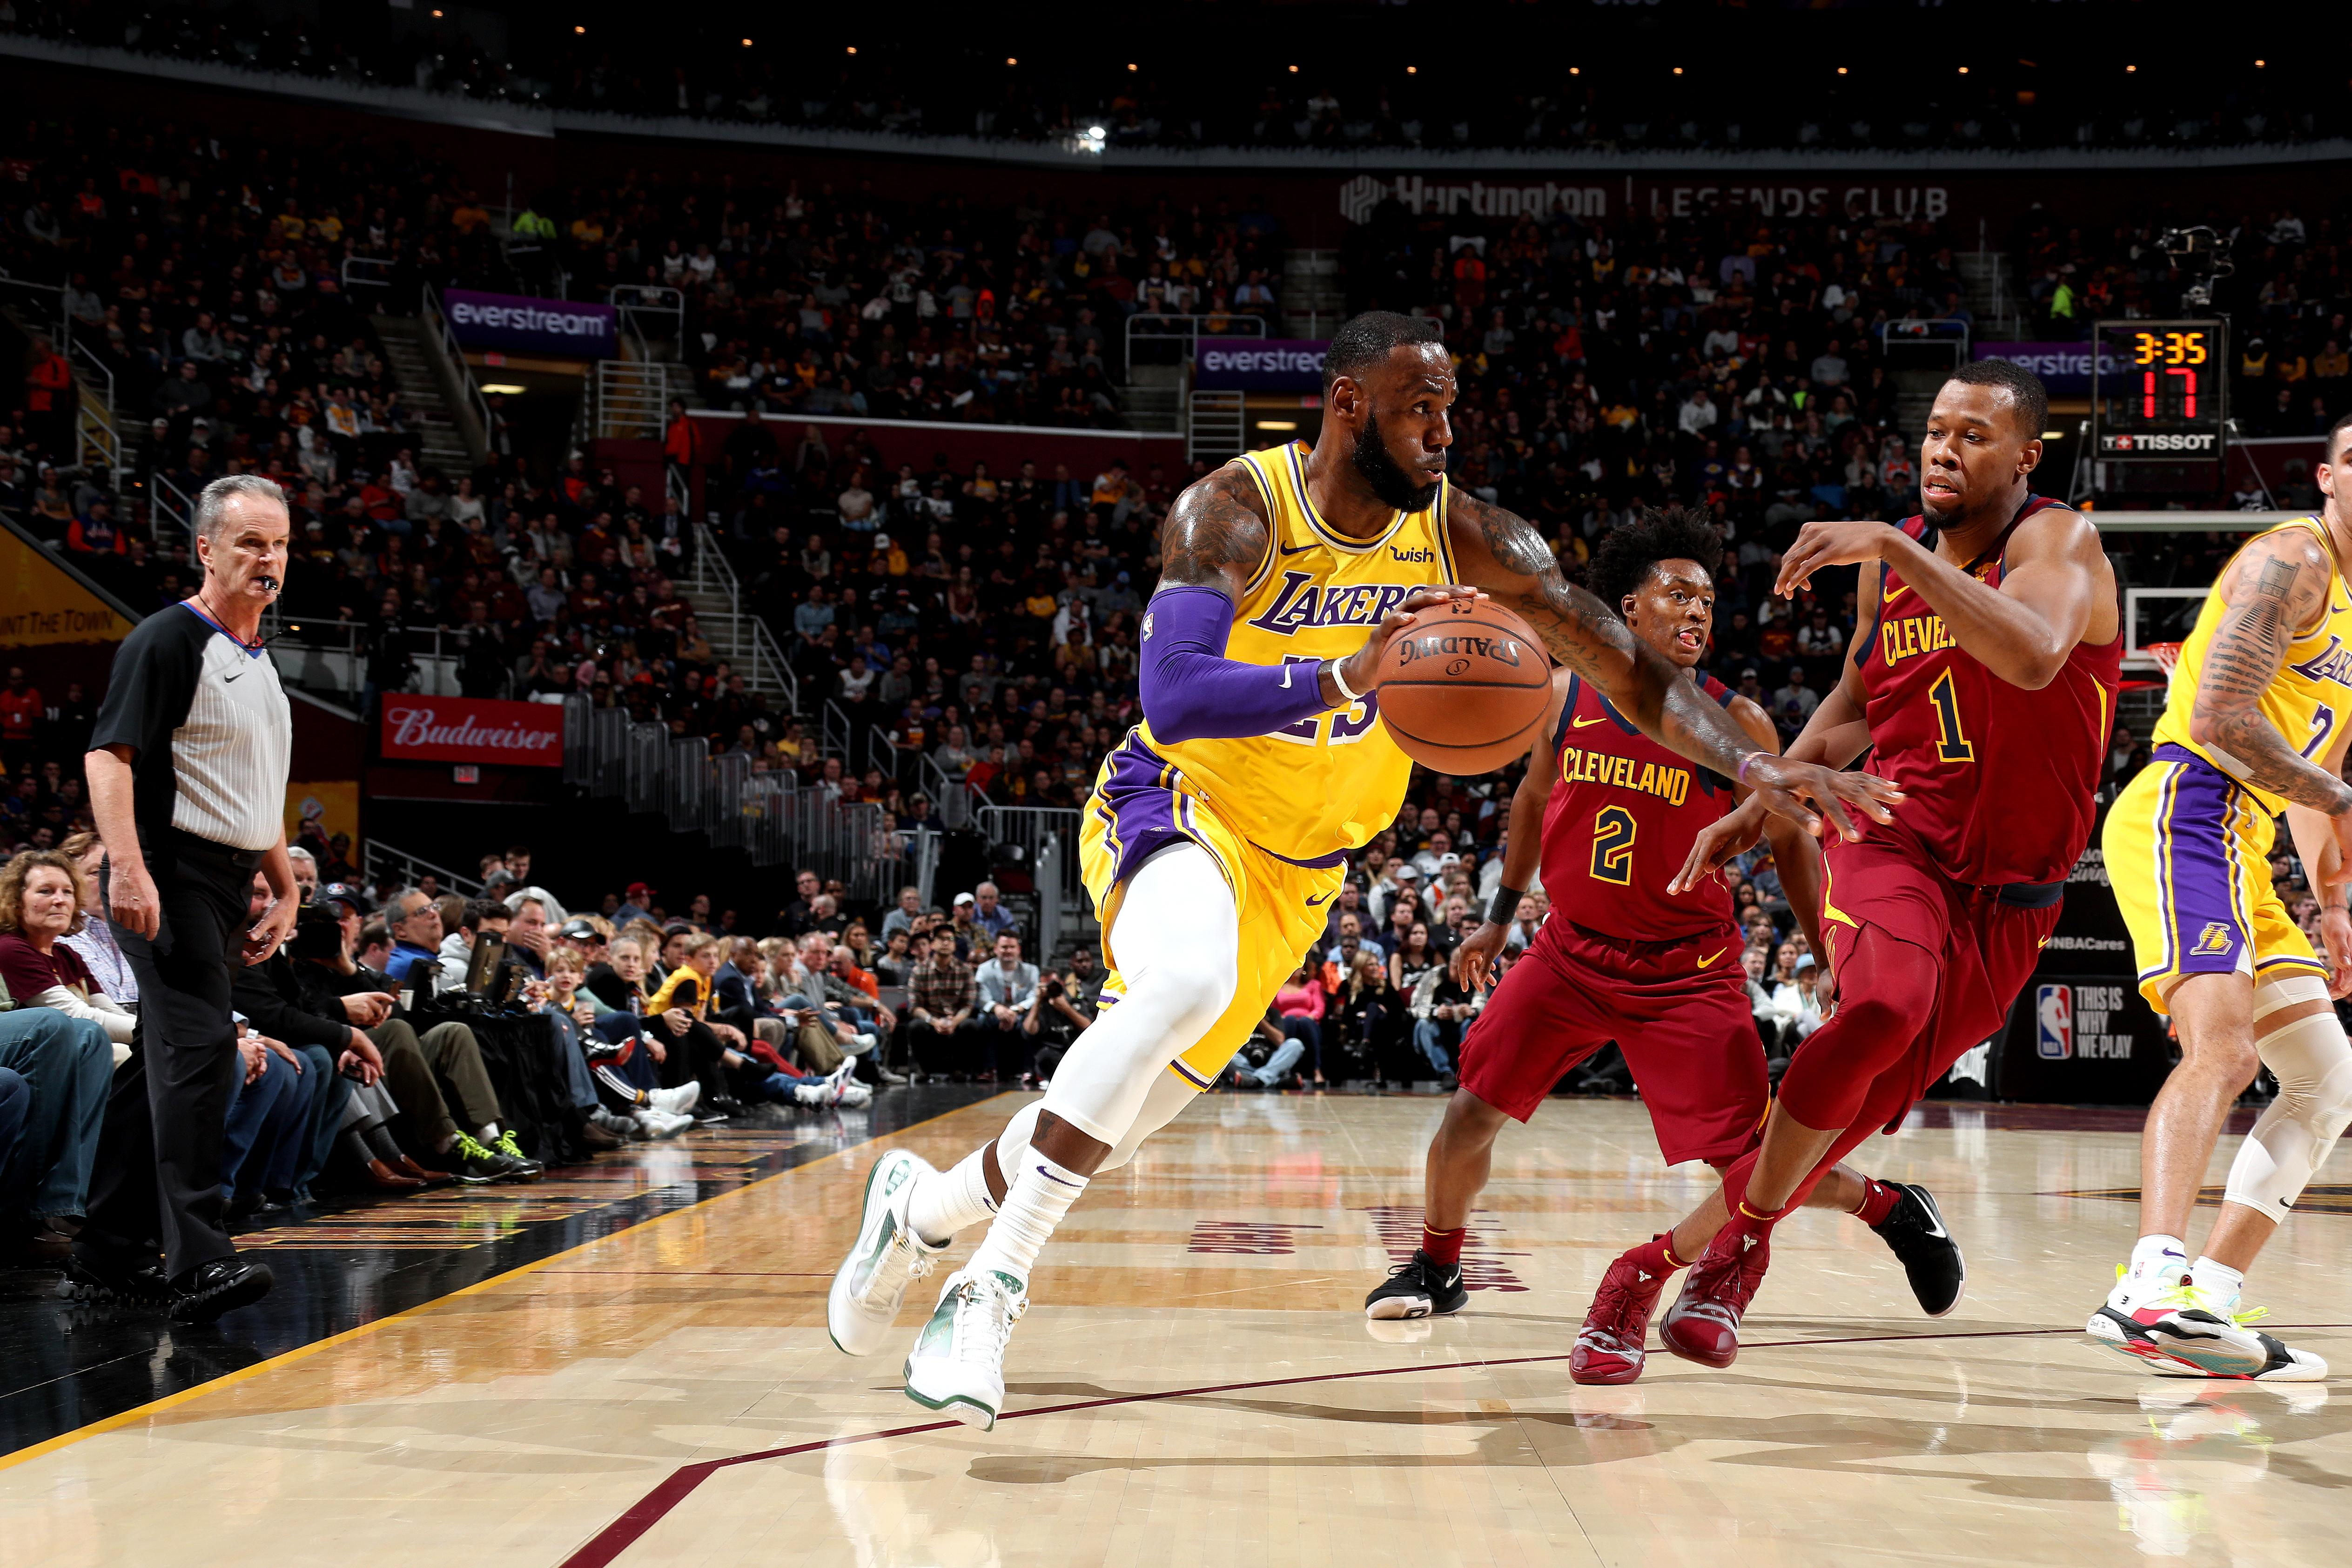 88322968dde8 LeBron James gets the welcome he deserves in return to Cleveland